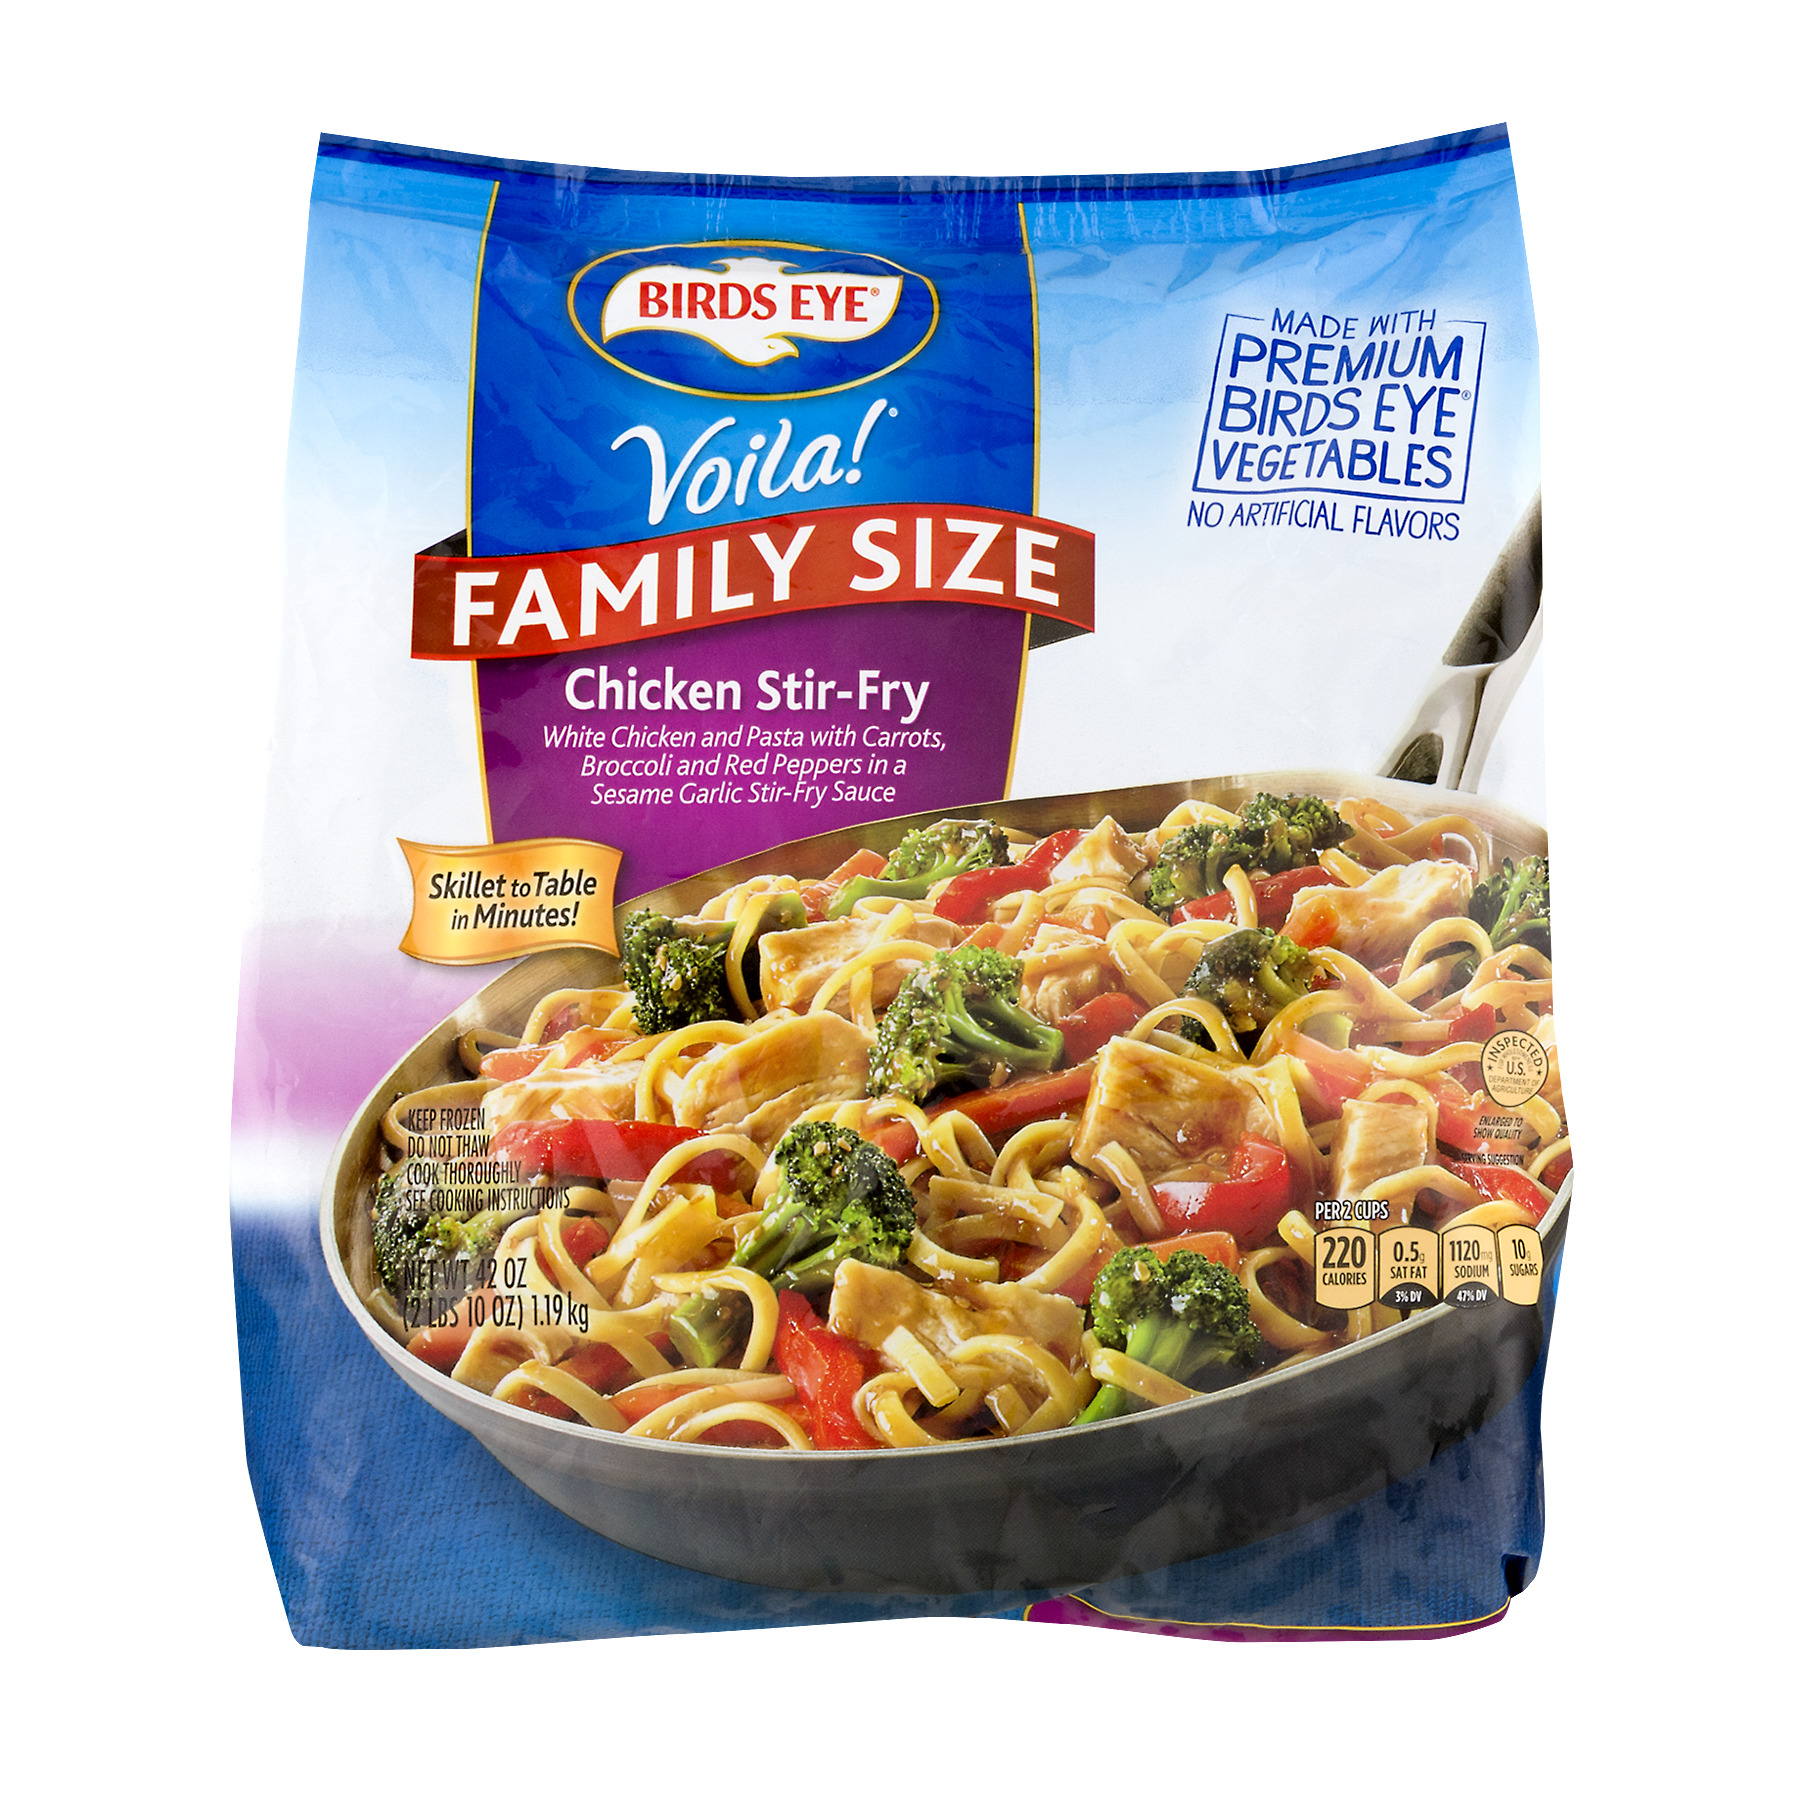 Birds Eye Voila! Chicken Stir-Fry Family Size, 42 oz